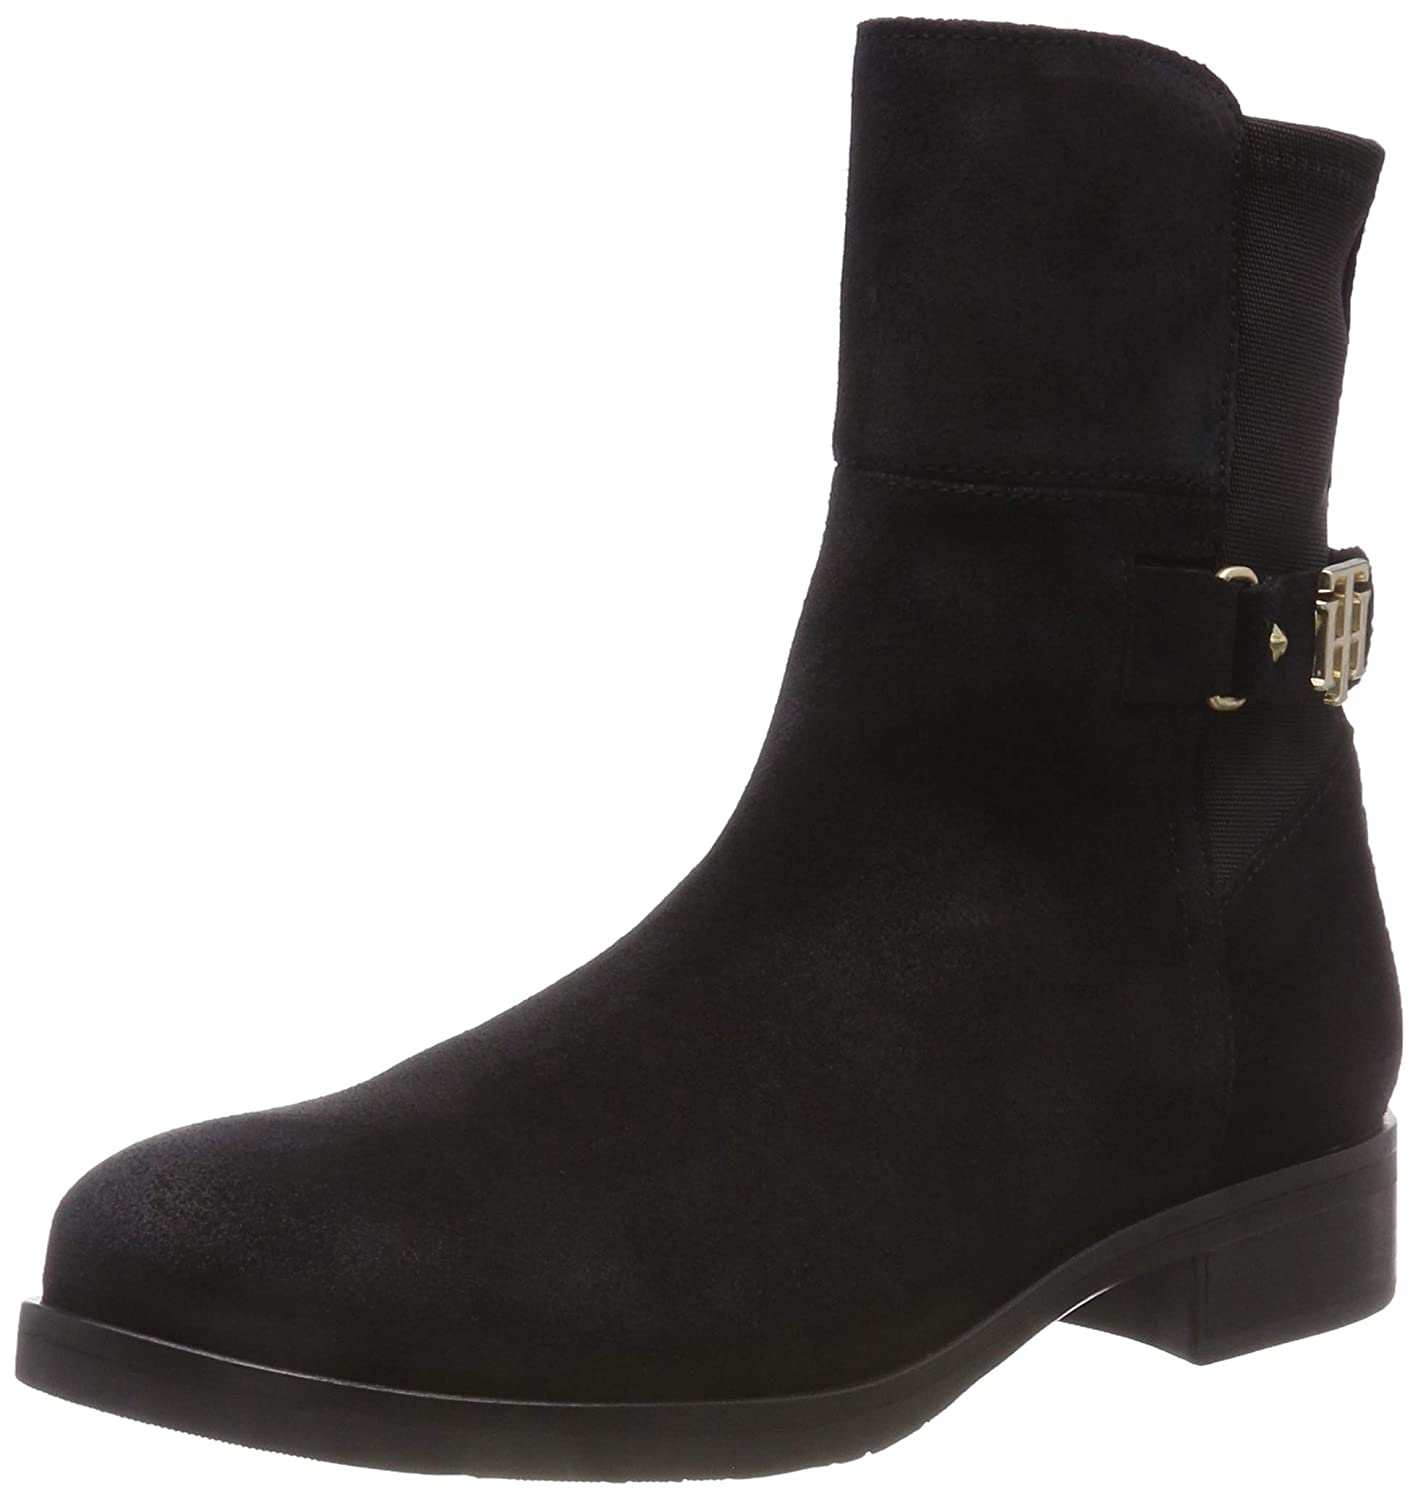 Tommy Hilfiger TH Buckle Bootie Stretch, Botines para Mujer: Amazon.es: Zapatos y complementos